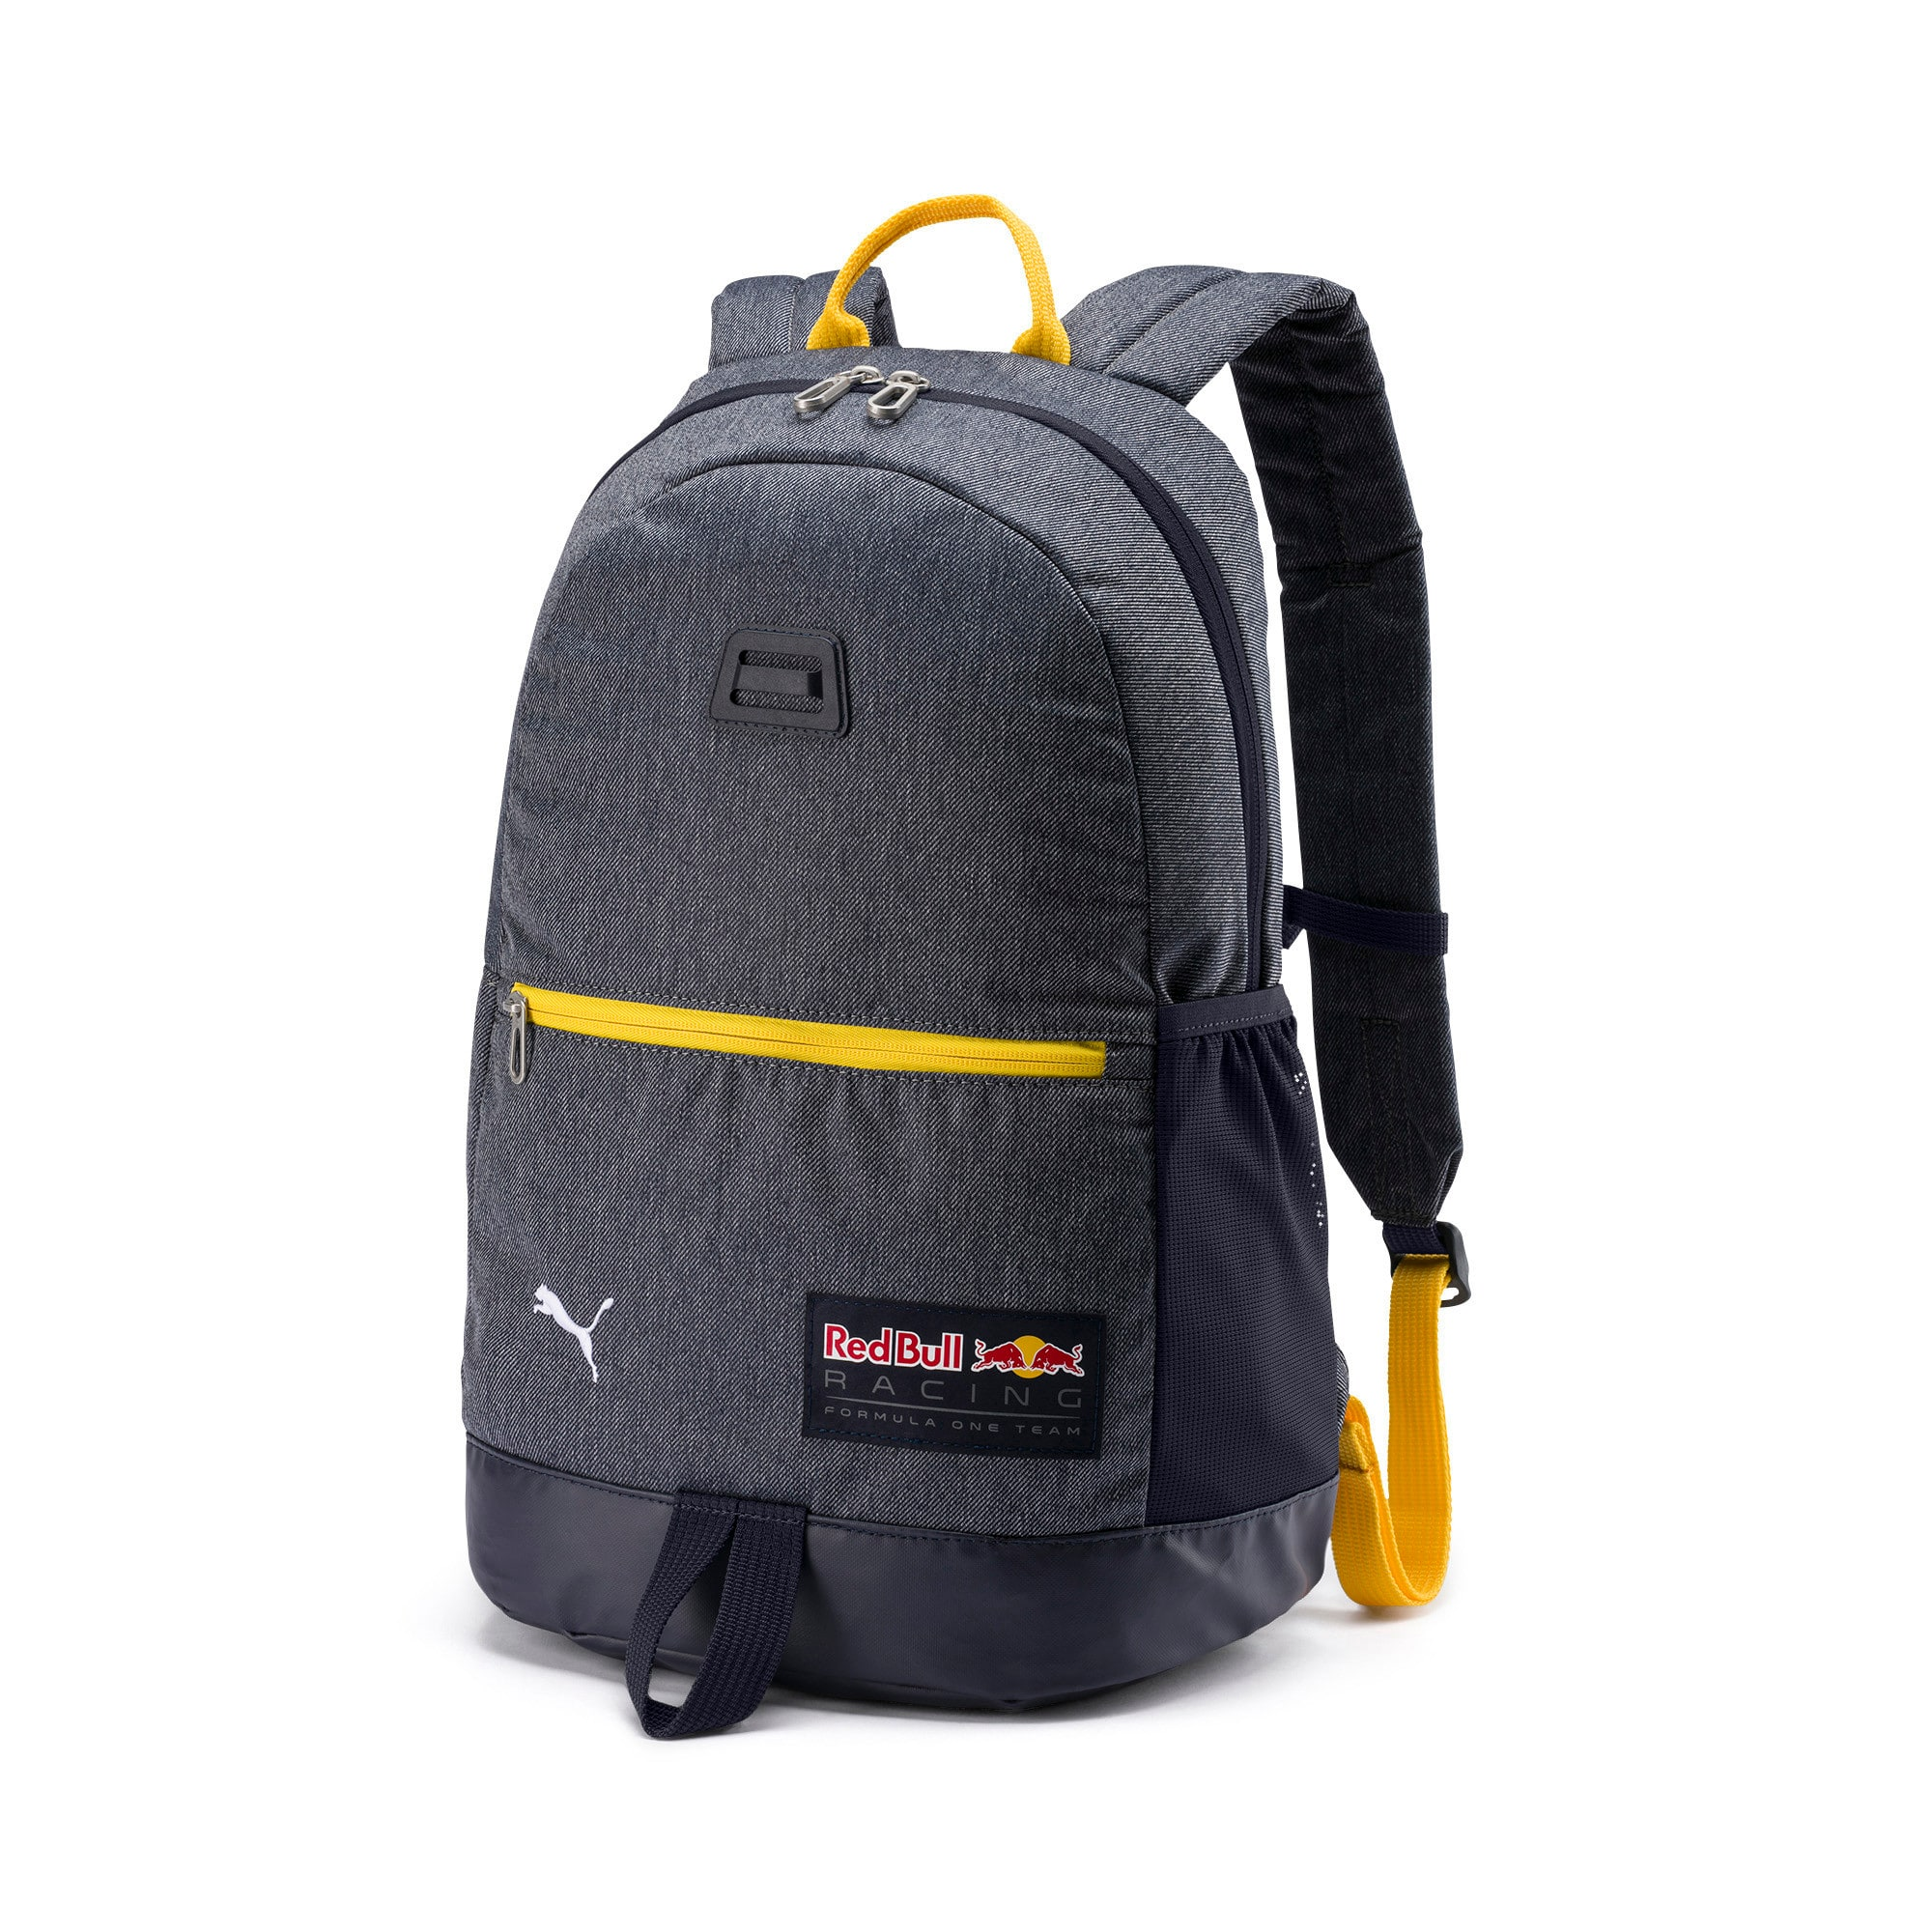 Thumbnail 1 of Red Bull Racing Lifestyle Rucksack, NIGHT SKY, medium